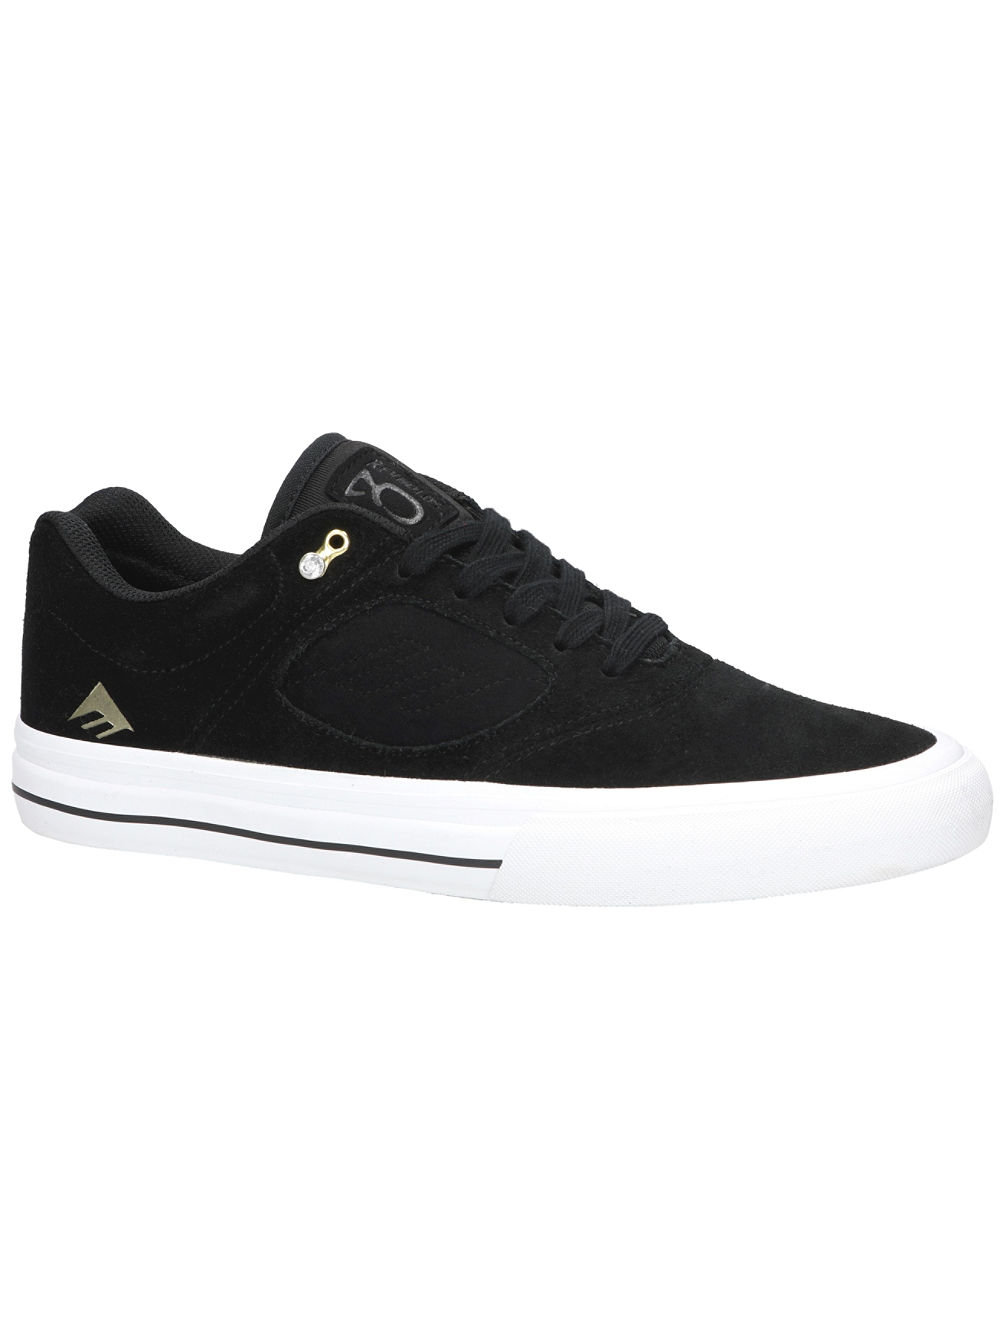 Reynolds 3 G6 Vulc Skate Shoes